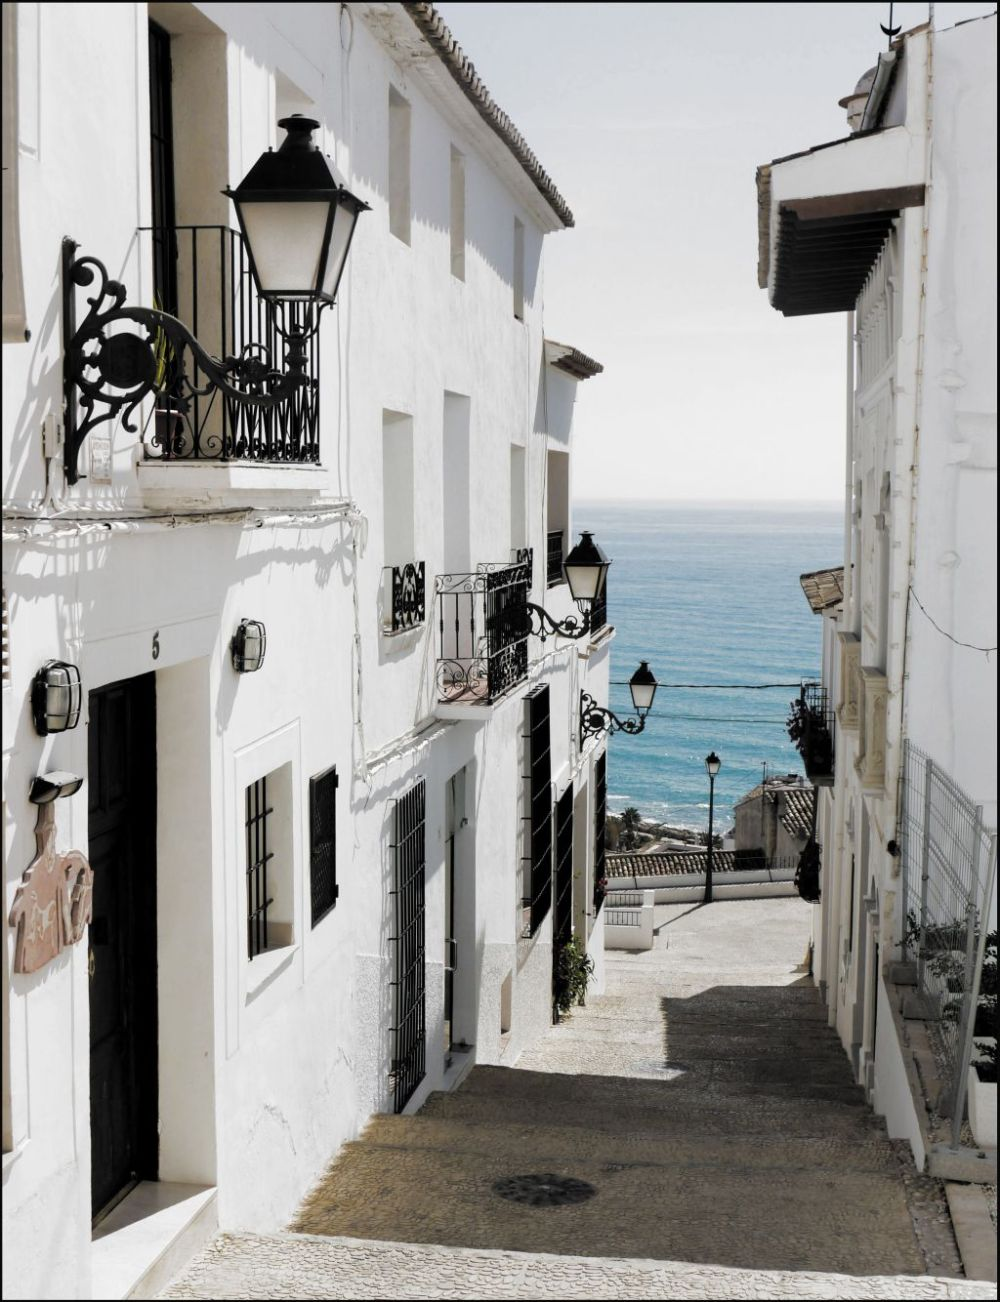 Townhouses in Altea - The Way to The Beach